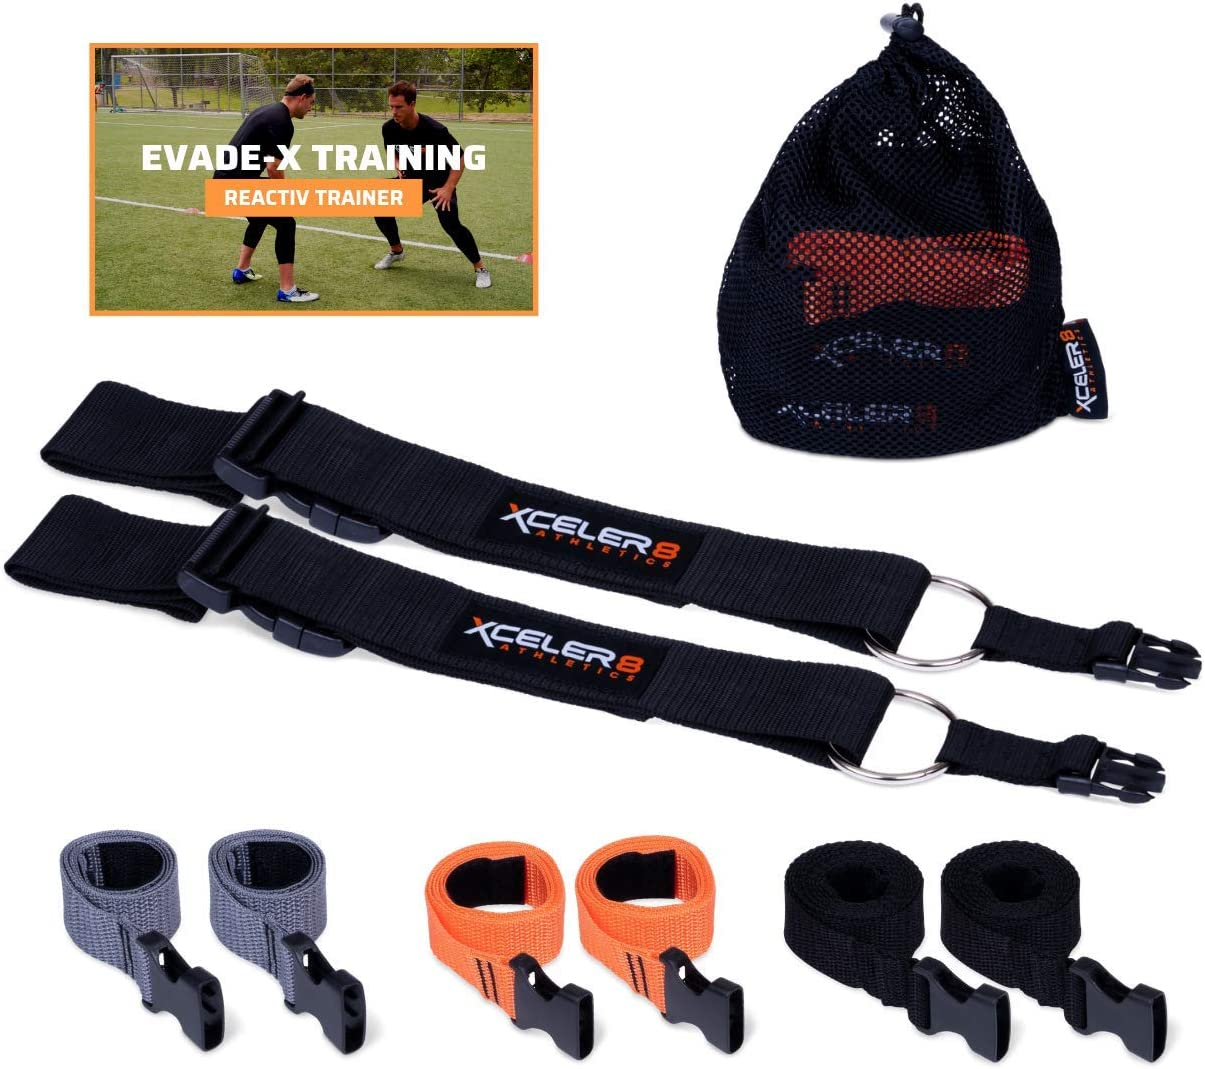 REACTIV TRAINER Evasion Belt 1 3 Pack 1v1 Agility Reaction Belt Coaching Equipment – Soccer, Basketball, Football, Lacrosse Defensive Trainer Adult Youth Plus Training Videos